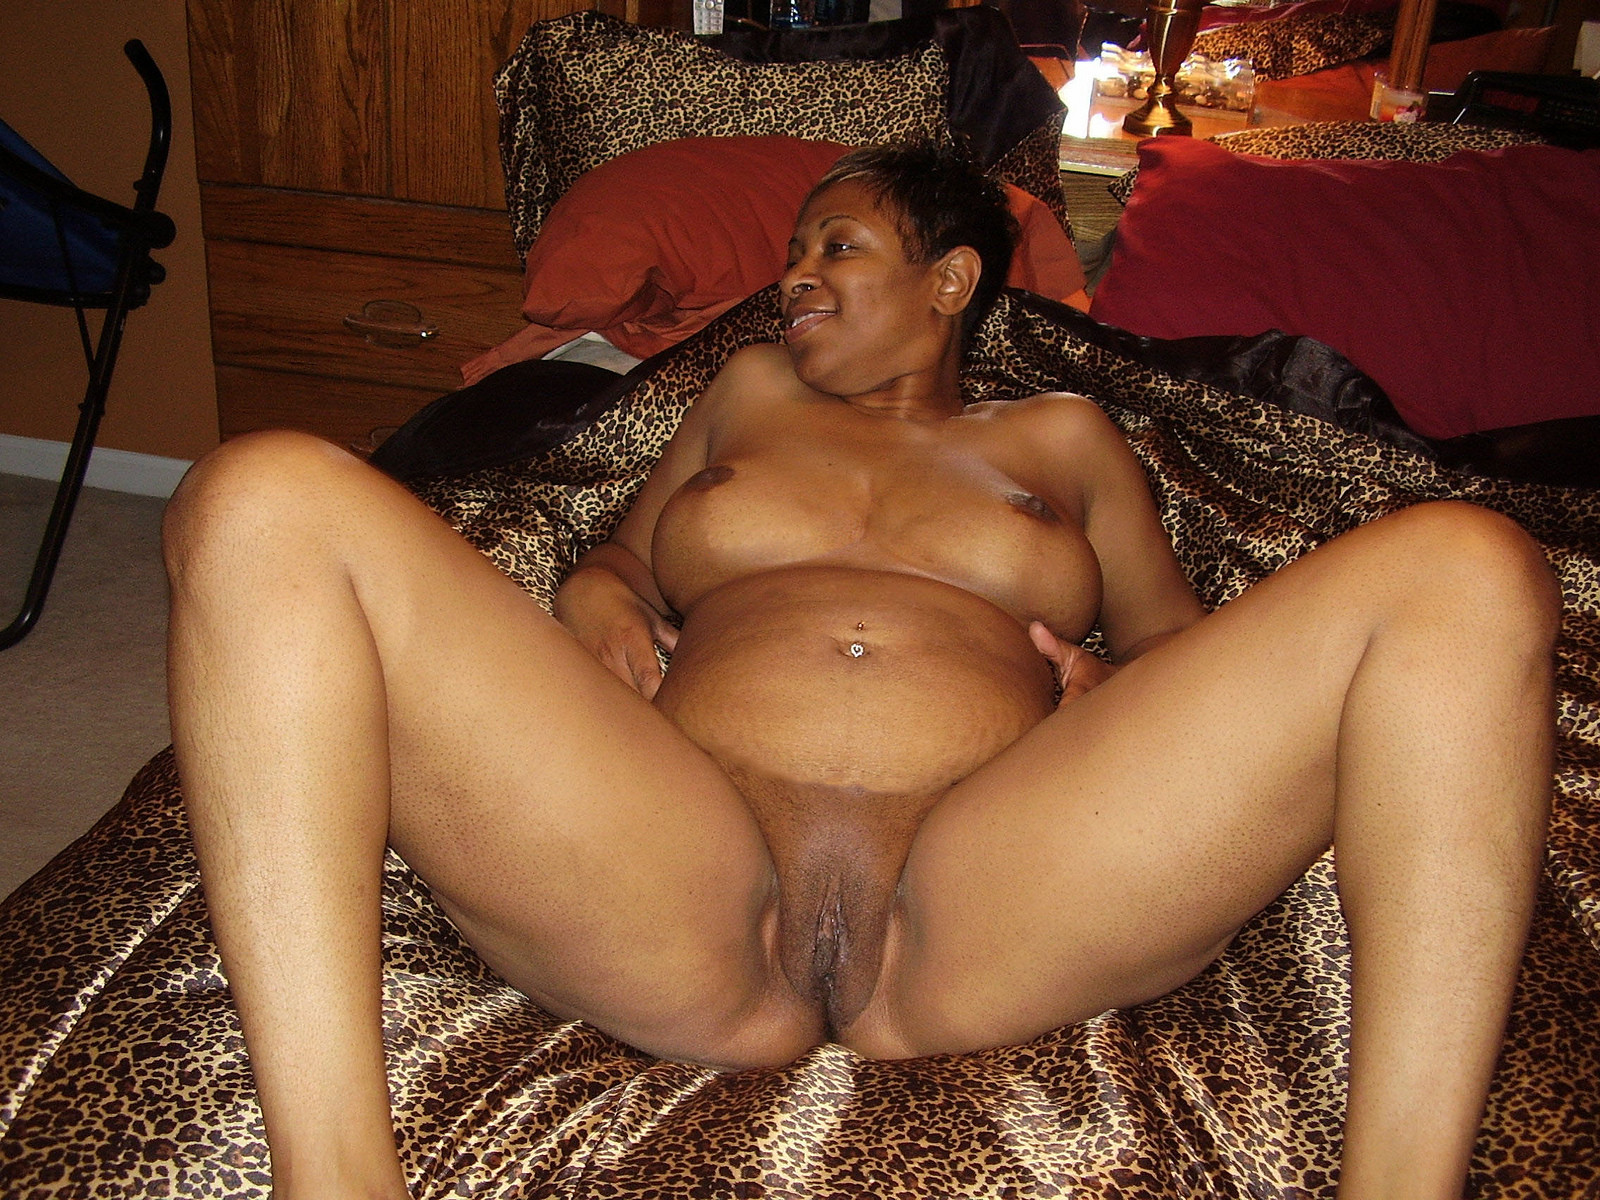 Old mother black vagina sweet africa